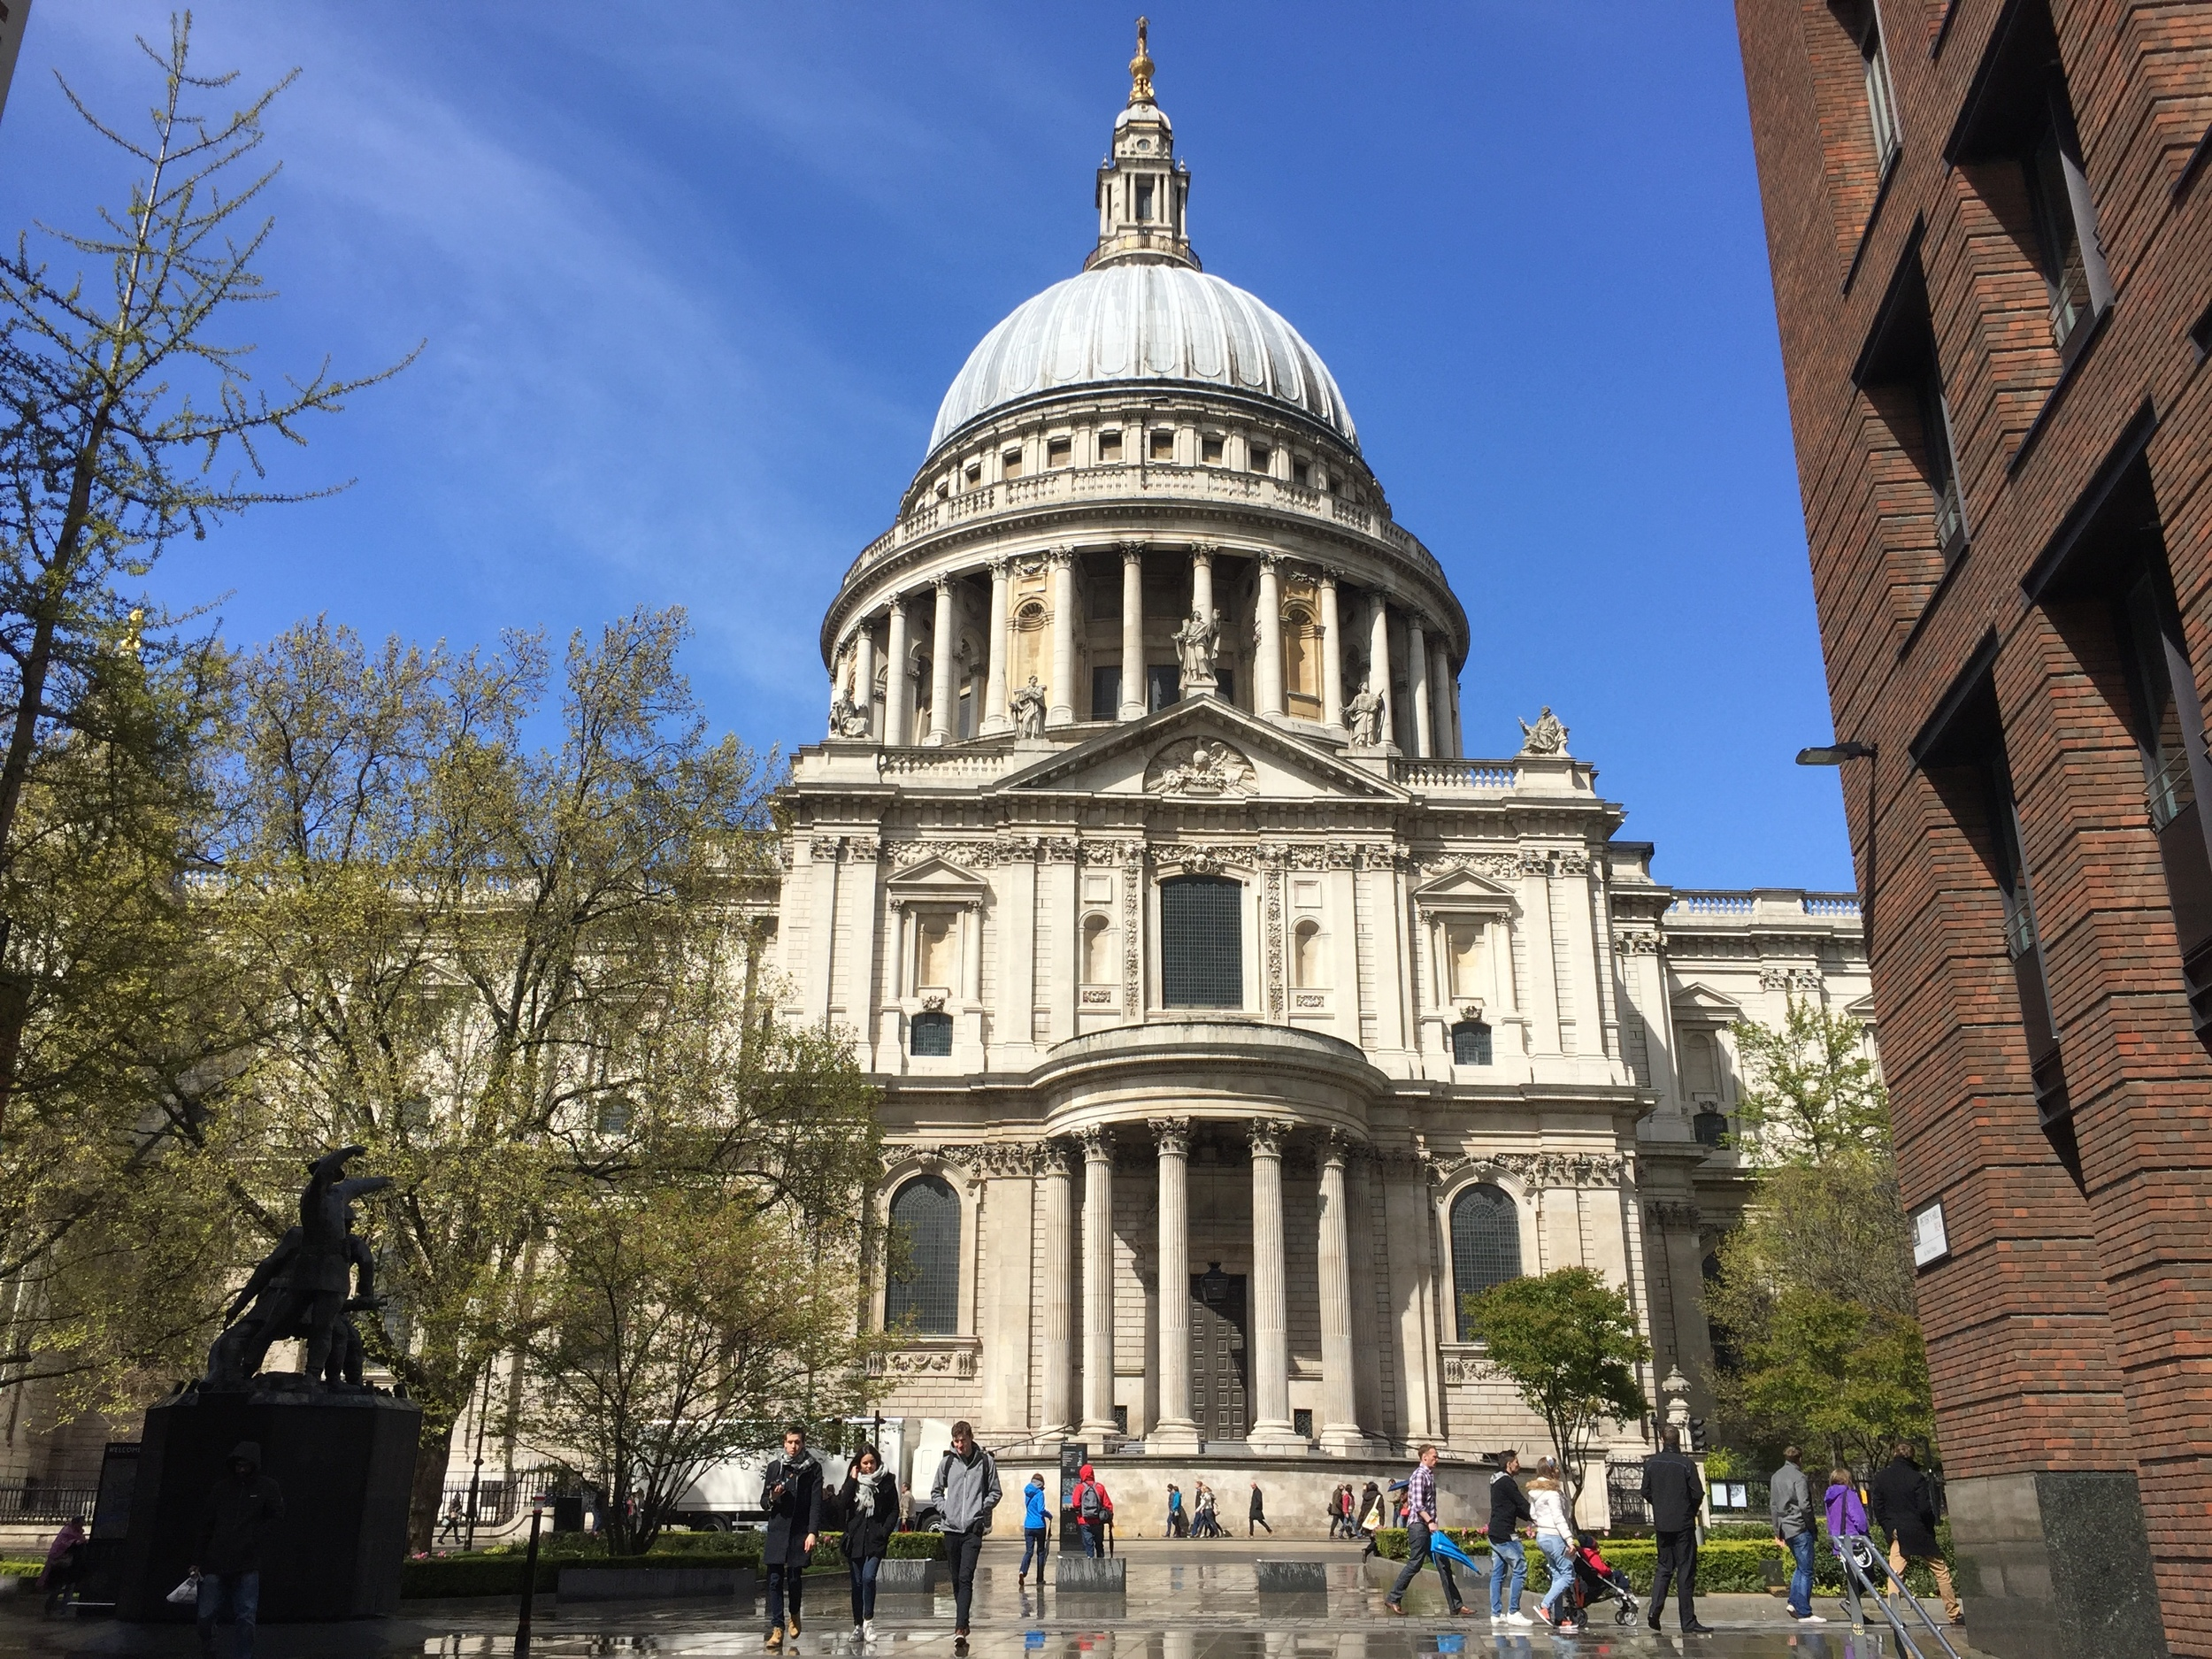 St. Paul's Cathedral in London, England.